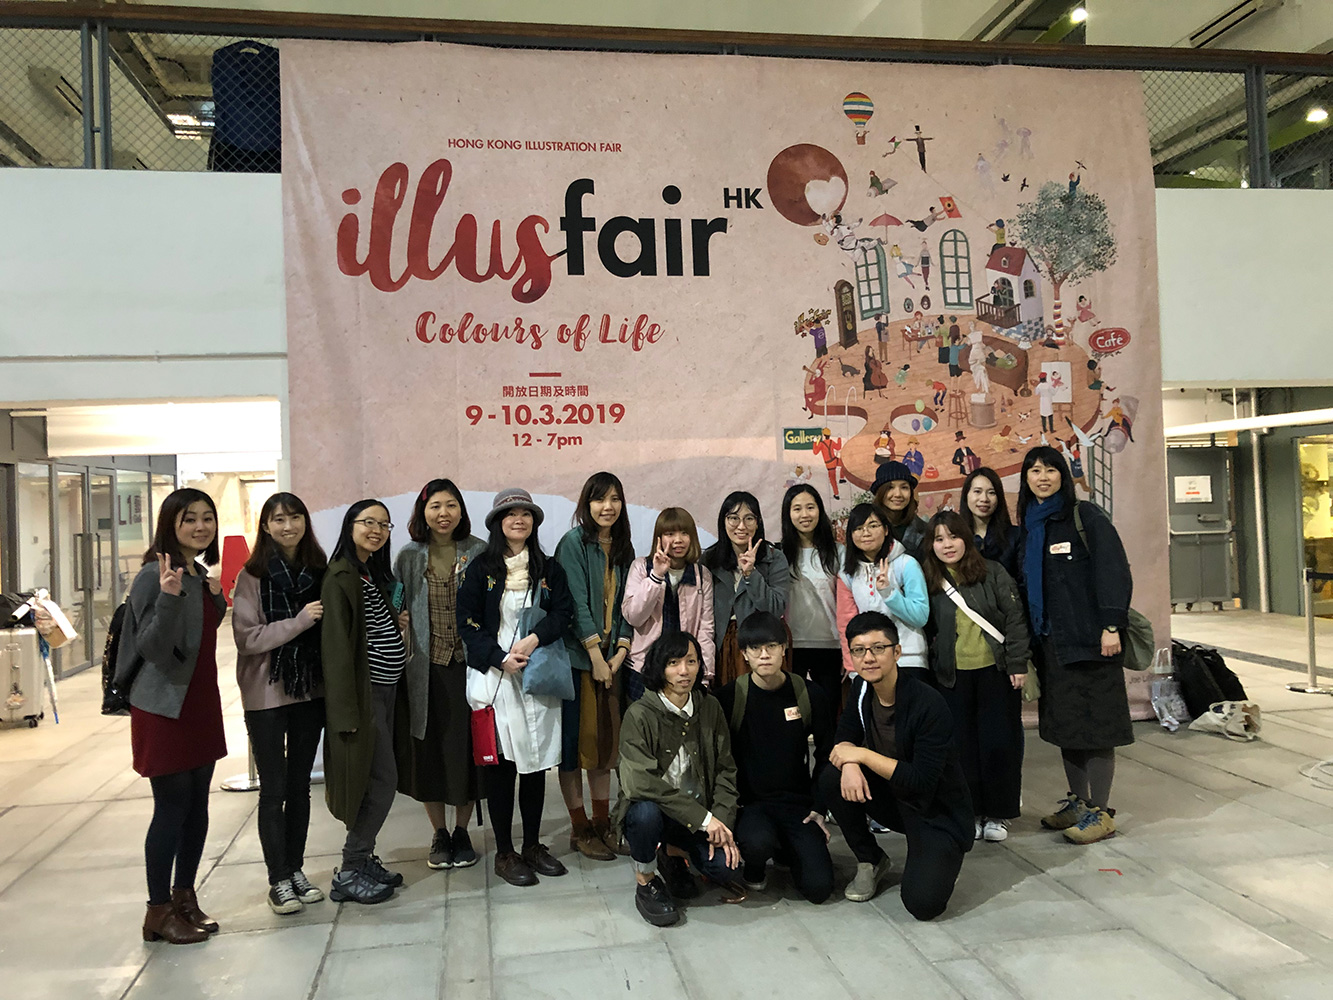 illusfairHK 2019 (Hong Kong illustration fair)